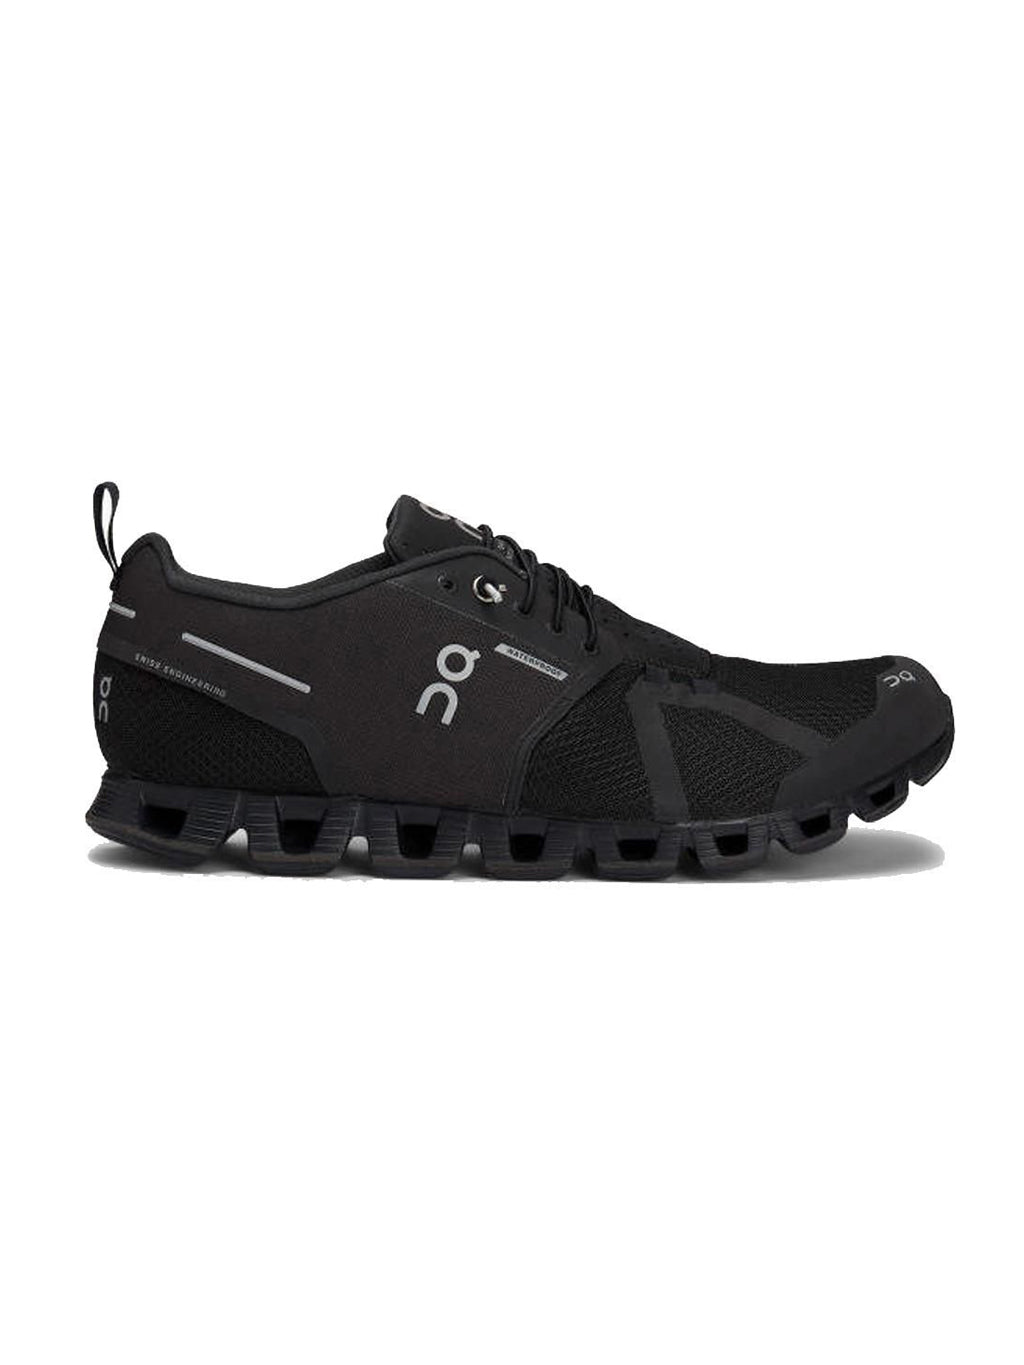 Black Cloud Waterproof Sneakers